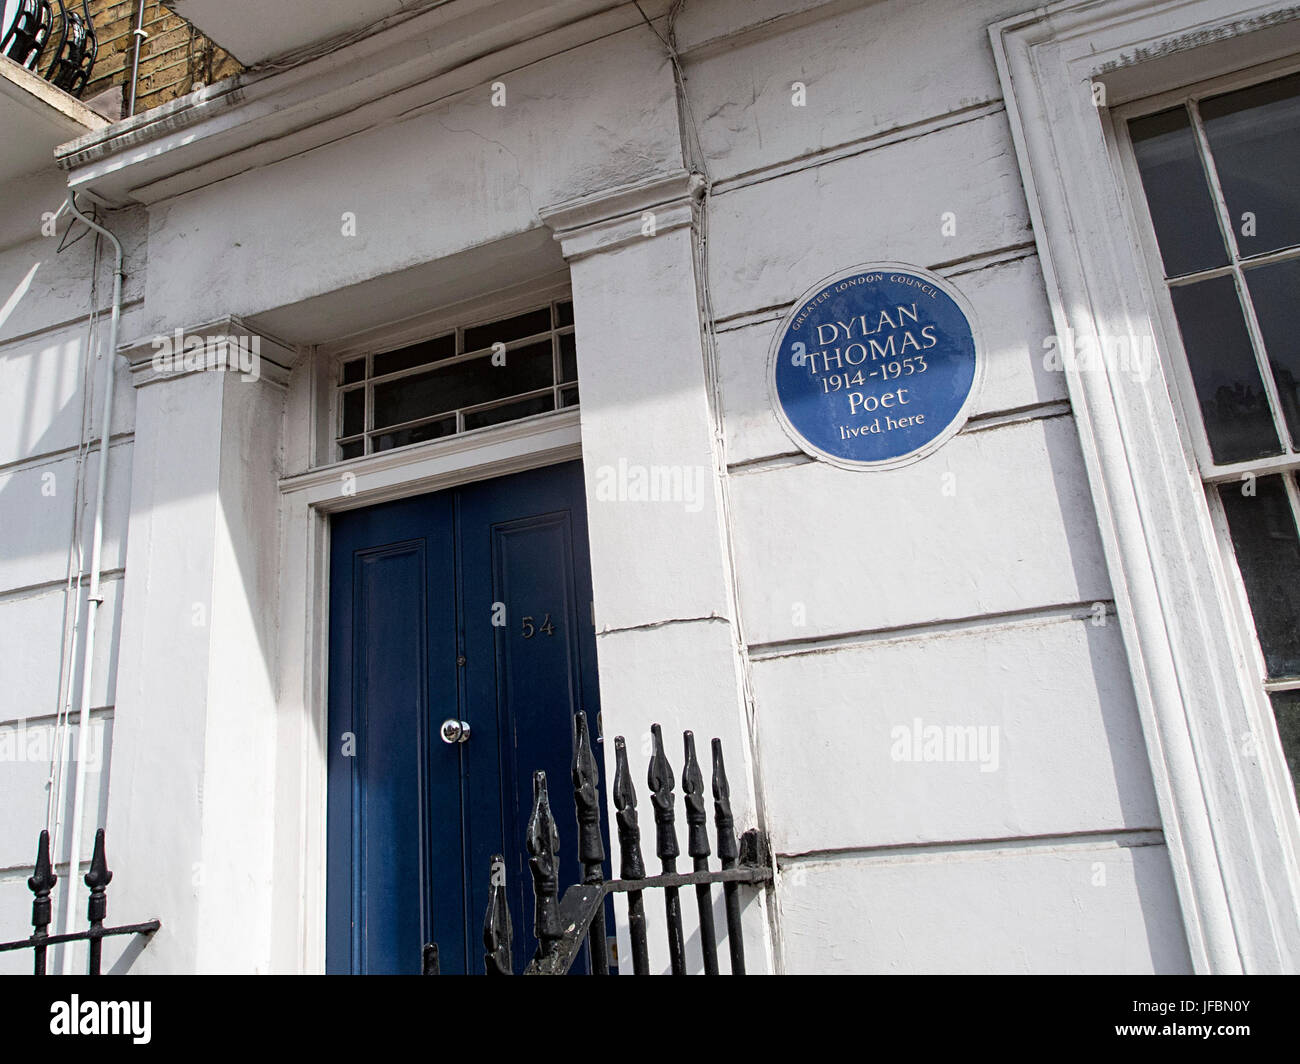 Dylan Thomas lived here Plaque - Camden Town - Stock Image